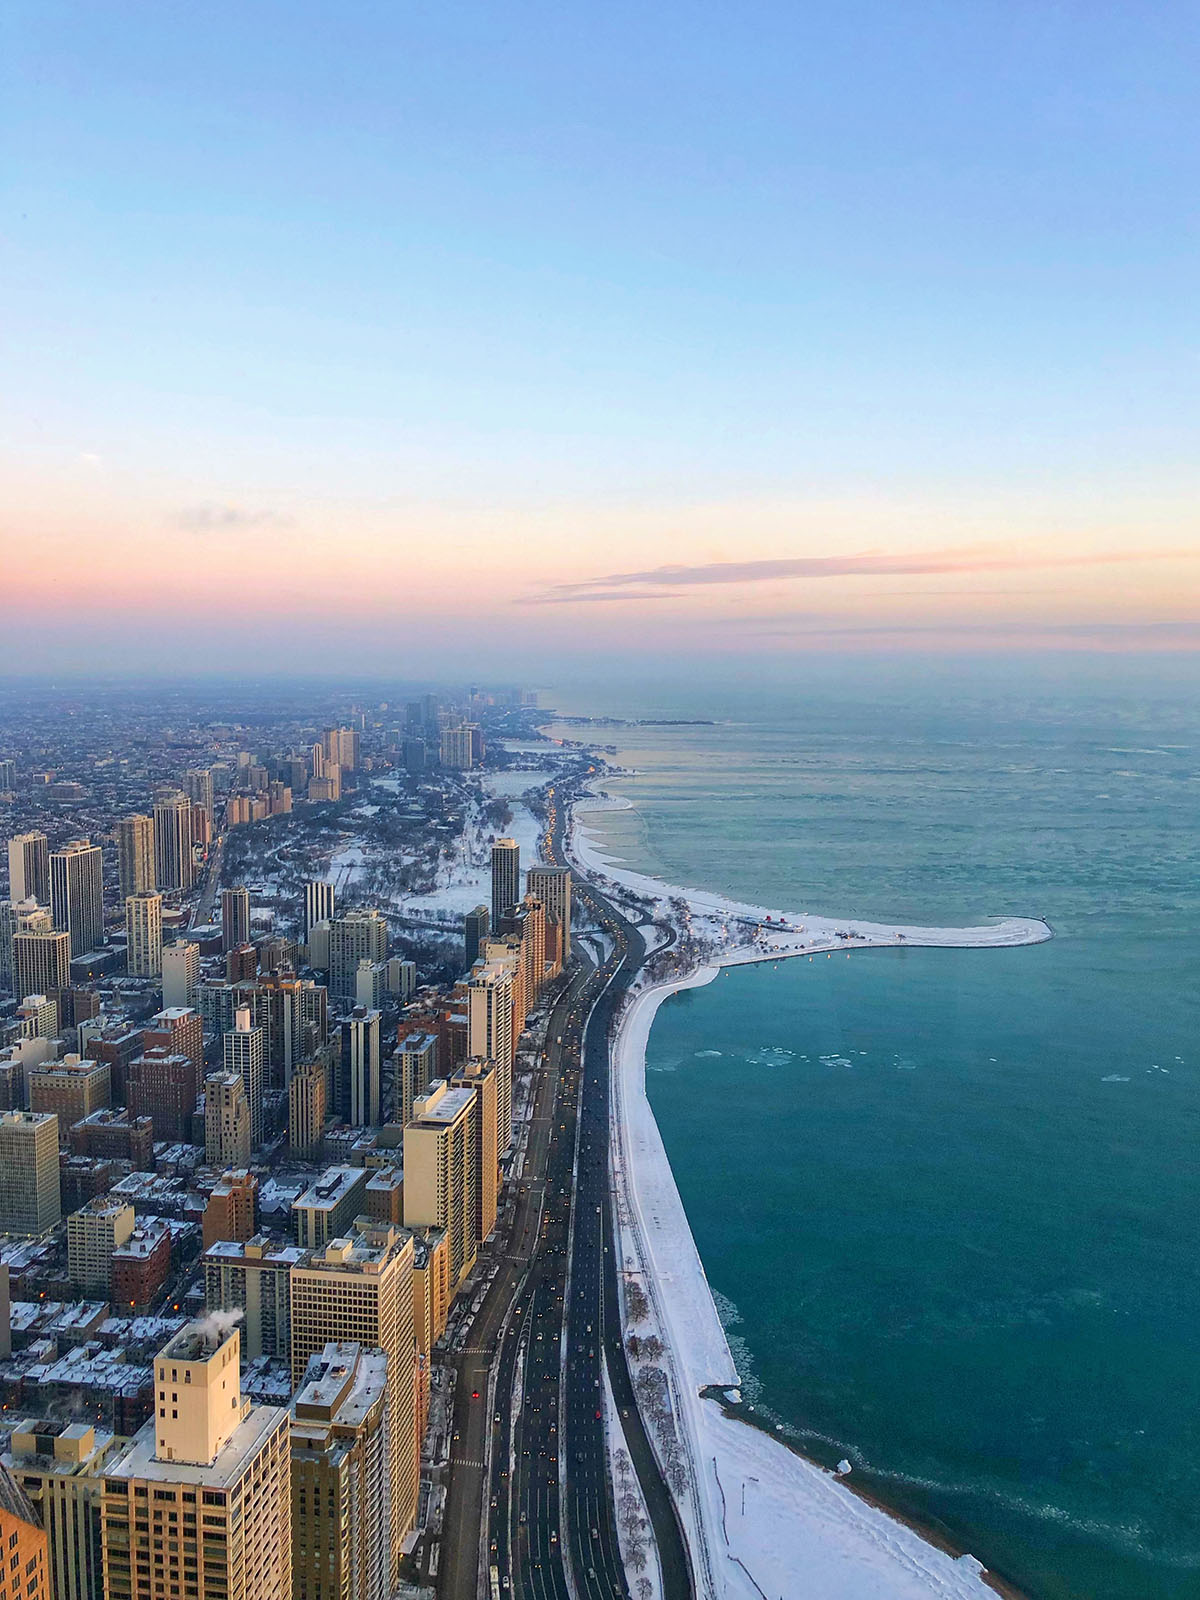 View from the Hancock Building's 360 Observatory on the 94th floor in Chicago. This is looking north at the lake and the Gold Coast, Old Town, and Lincoln Park at sunrise!